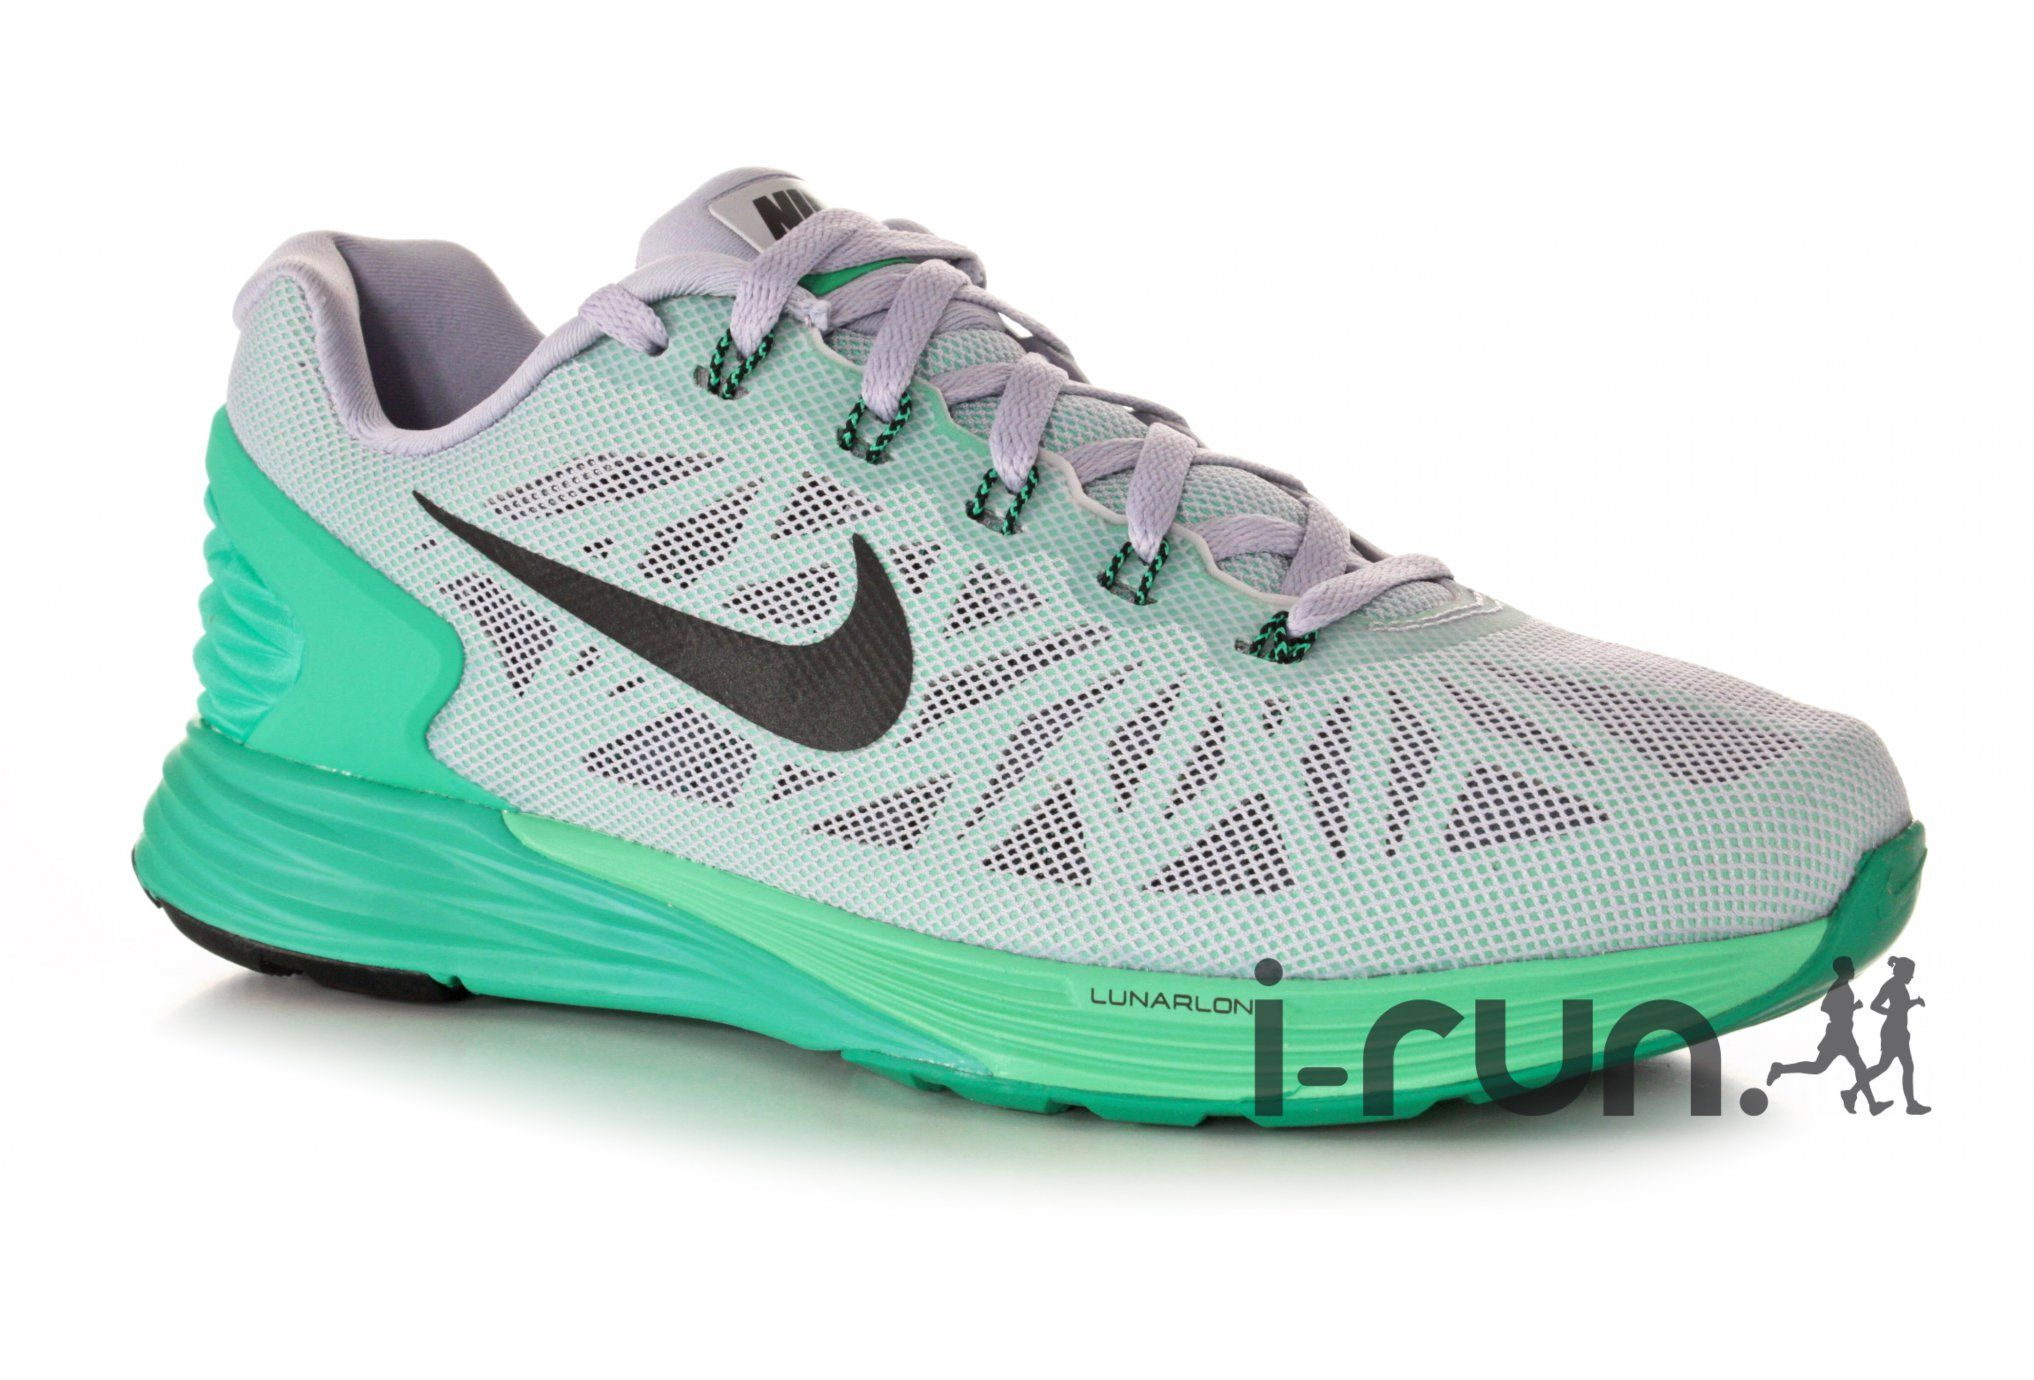 new arrival 47ad3 71849 Nike Lunarglide 6 W pas cher - Chaussures running femme running Route    chemin en promo